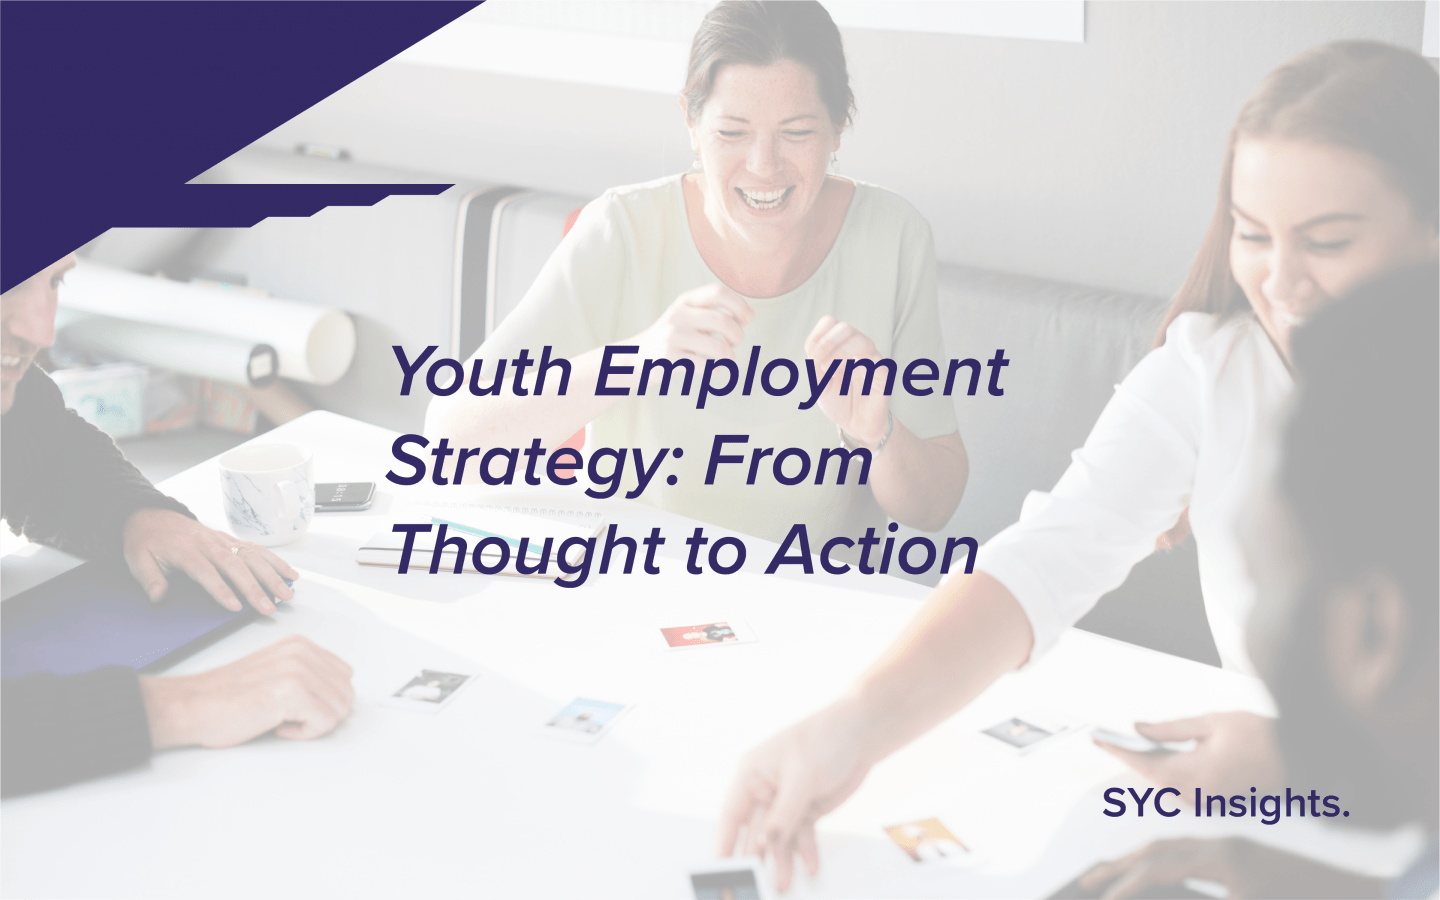 Youth Employment Strategy: From Thought to Action